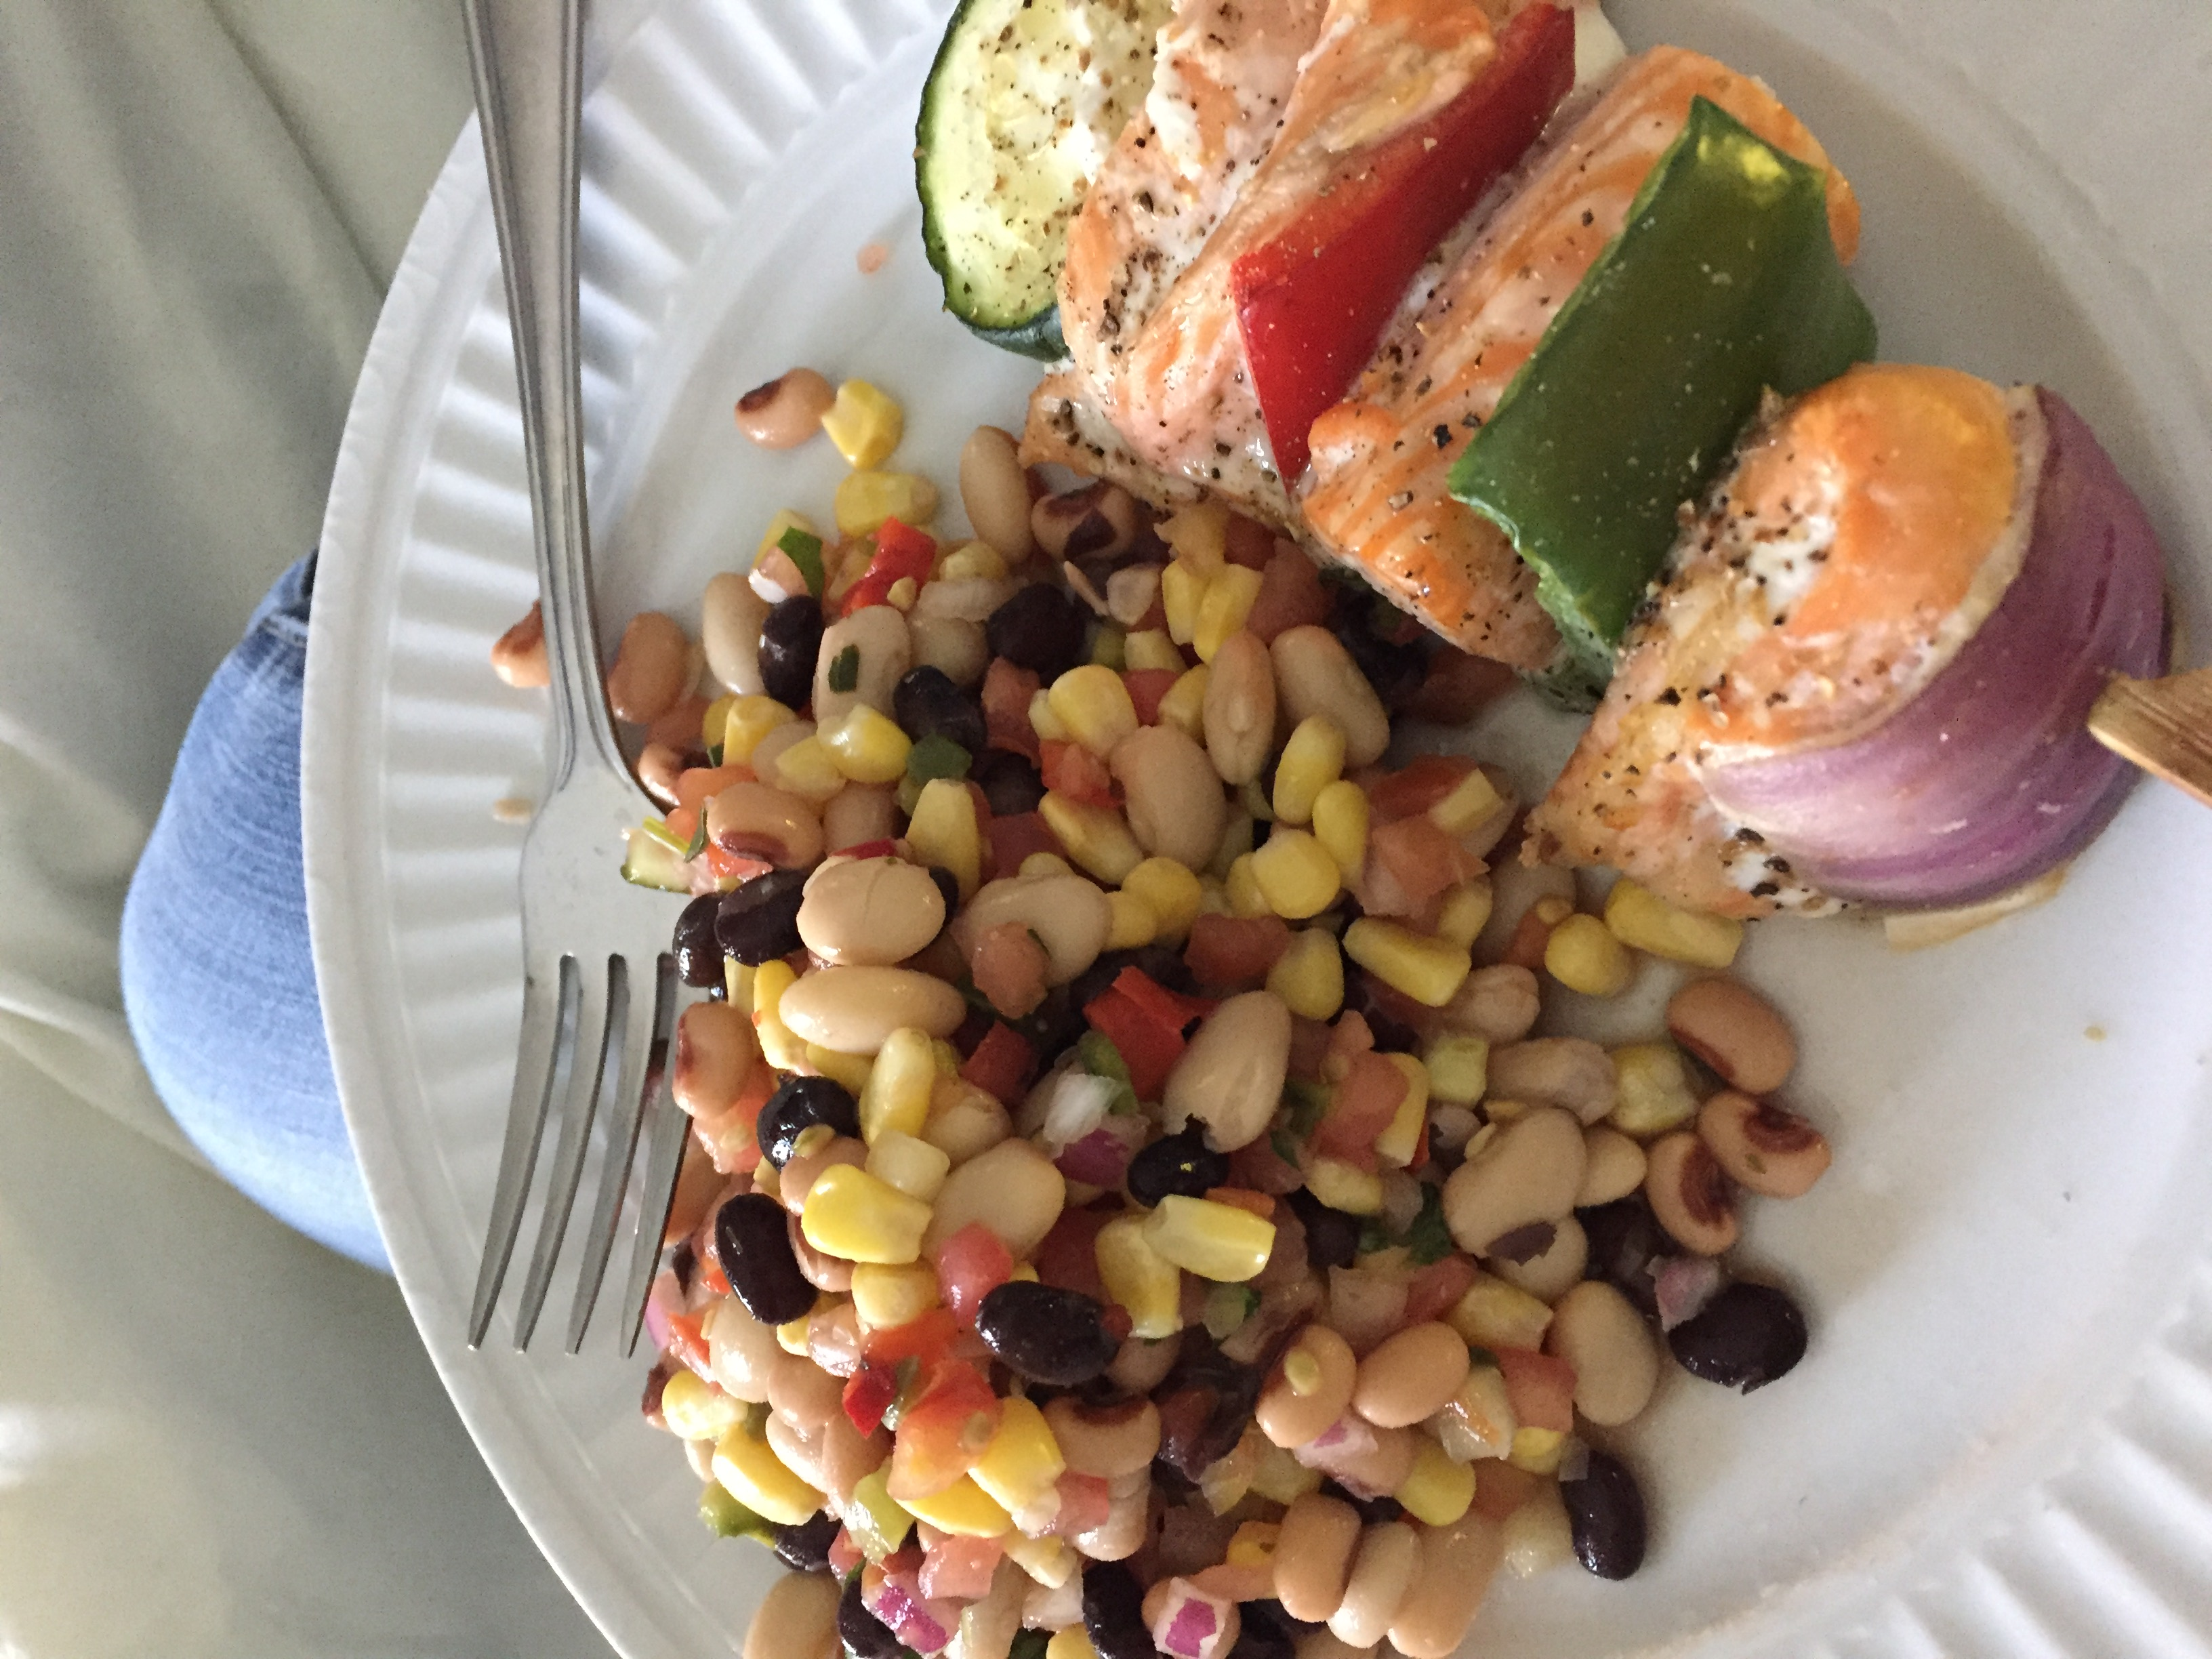 7F7FFDA4 77E9 4B45 9865 6355A181AF52 A 0 Point Weight Watchers Meal That's Actually Filling